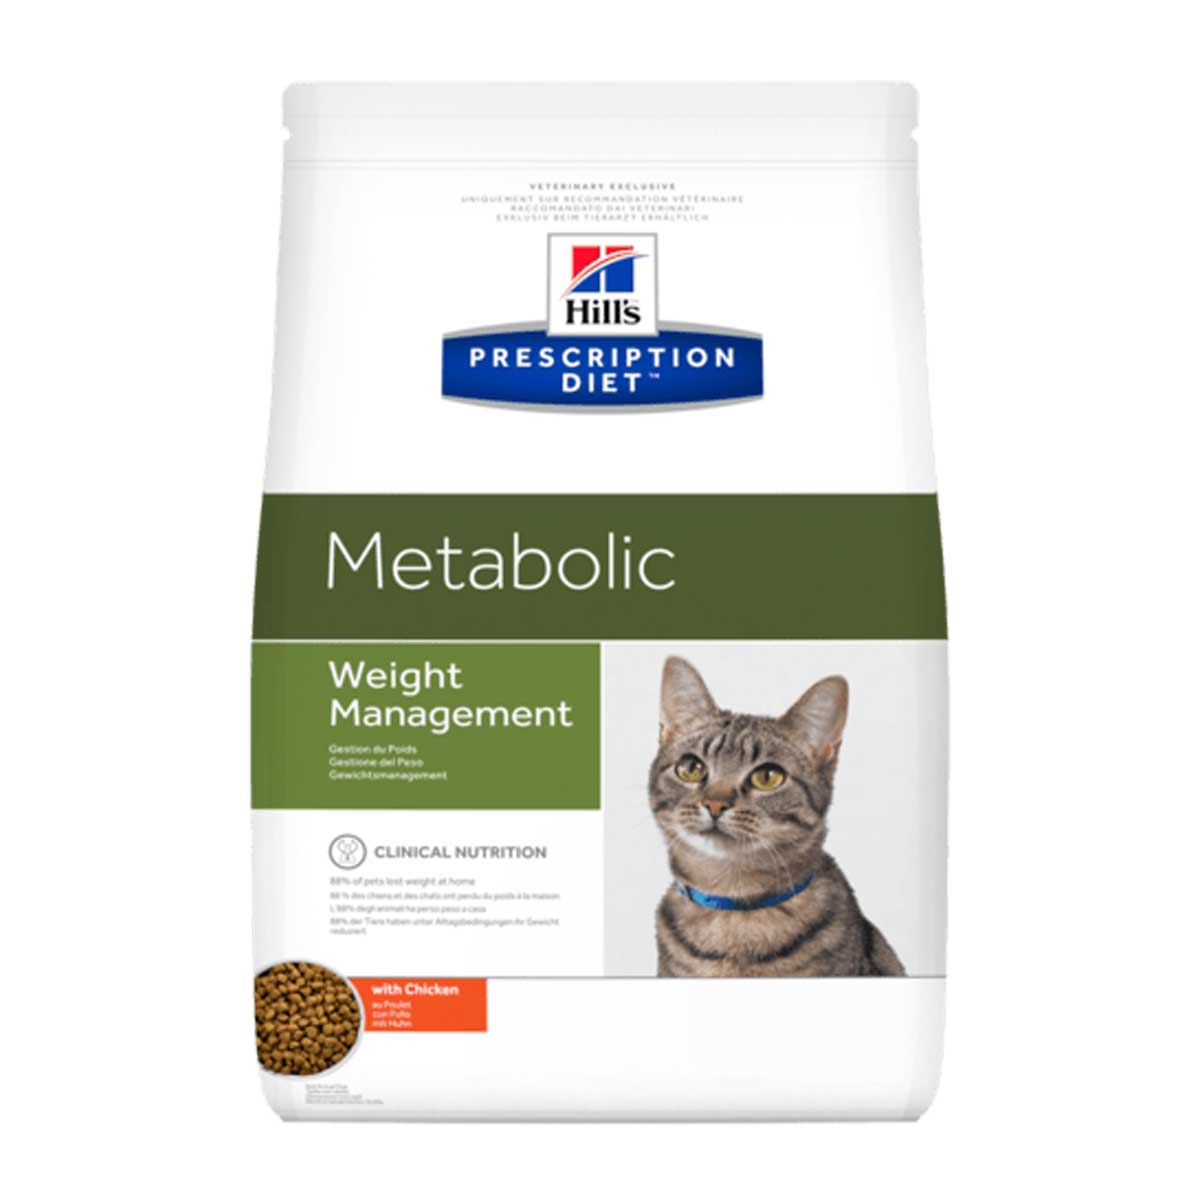 Cat Urinary Products | Huge Savings on Top Brands - Pet